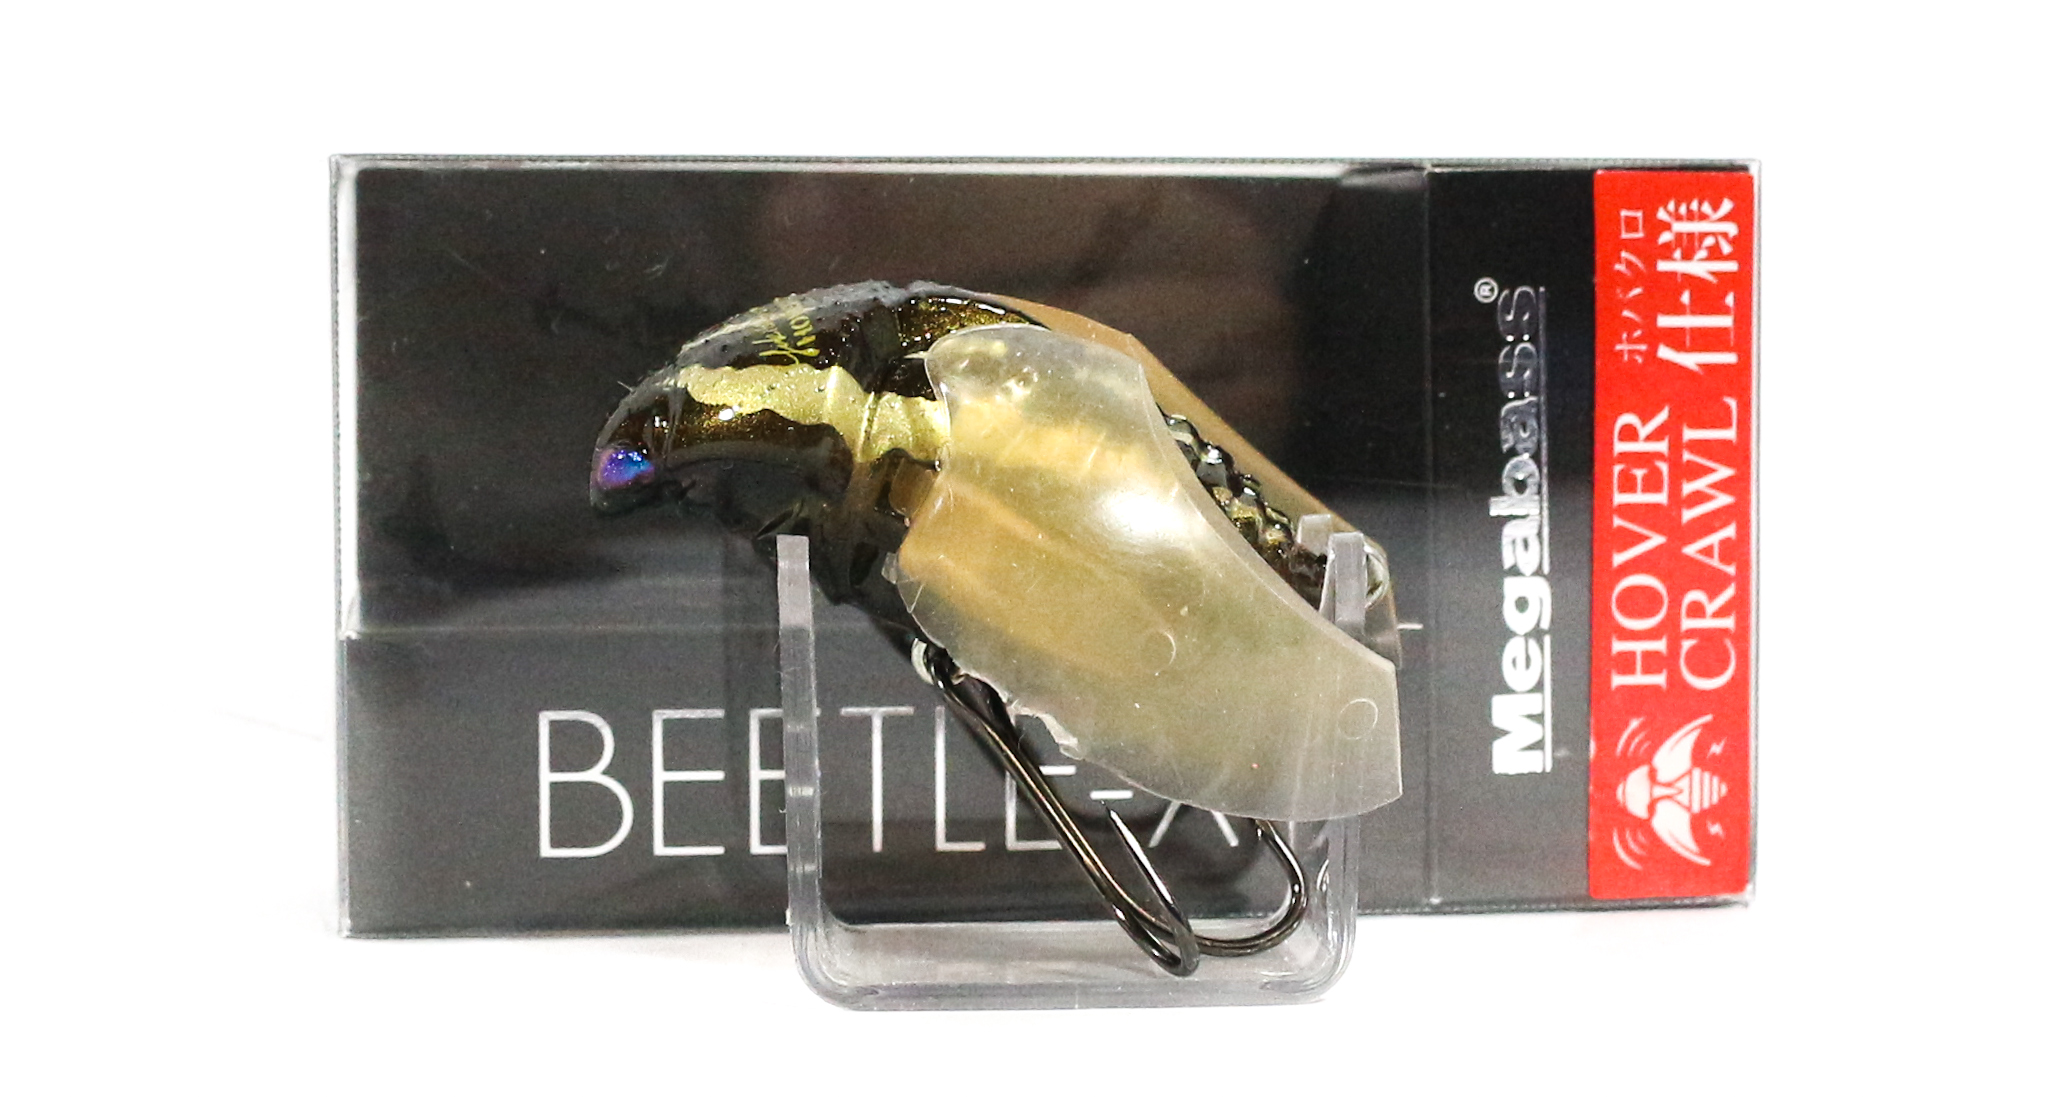 Megabass Beetle X Hover Crawl Floating Lure Kamikiri 2 (7367)